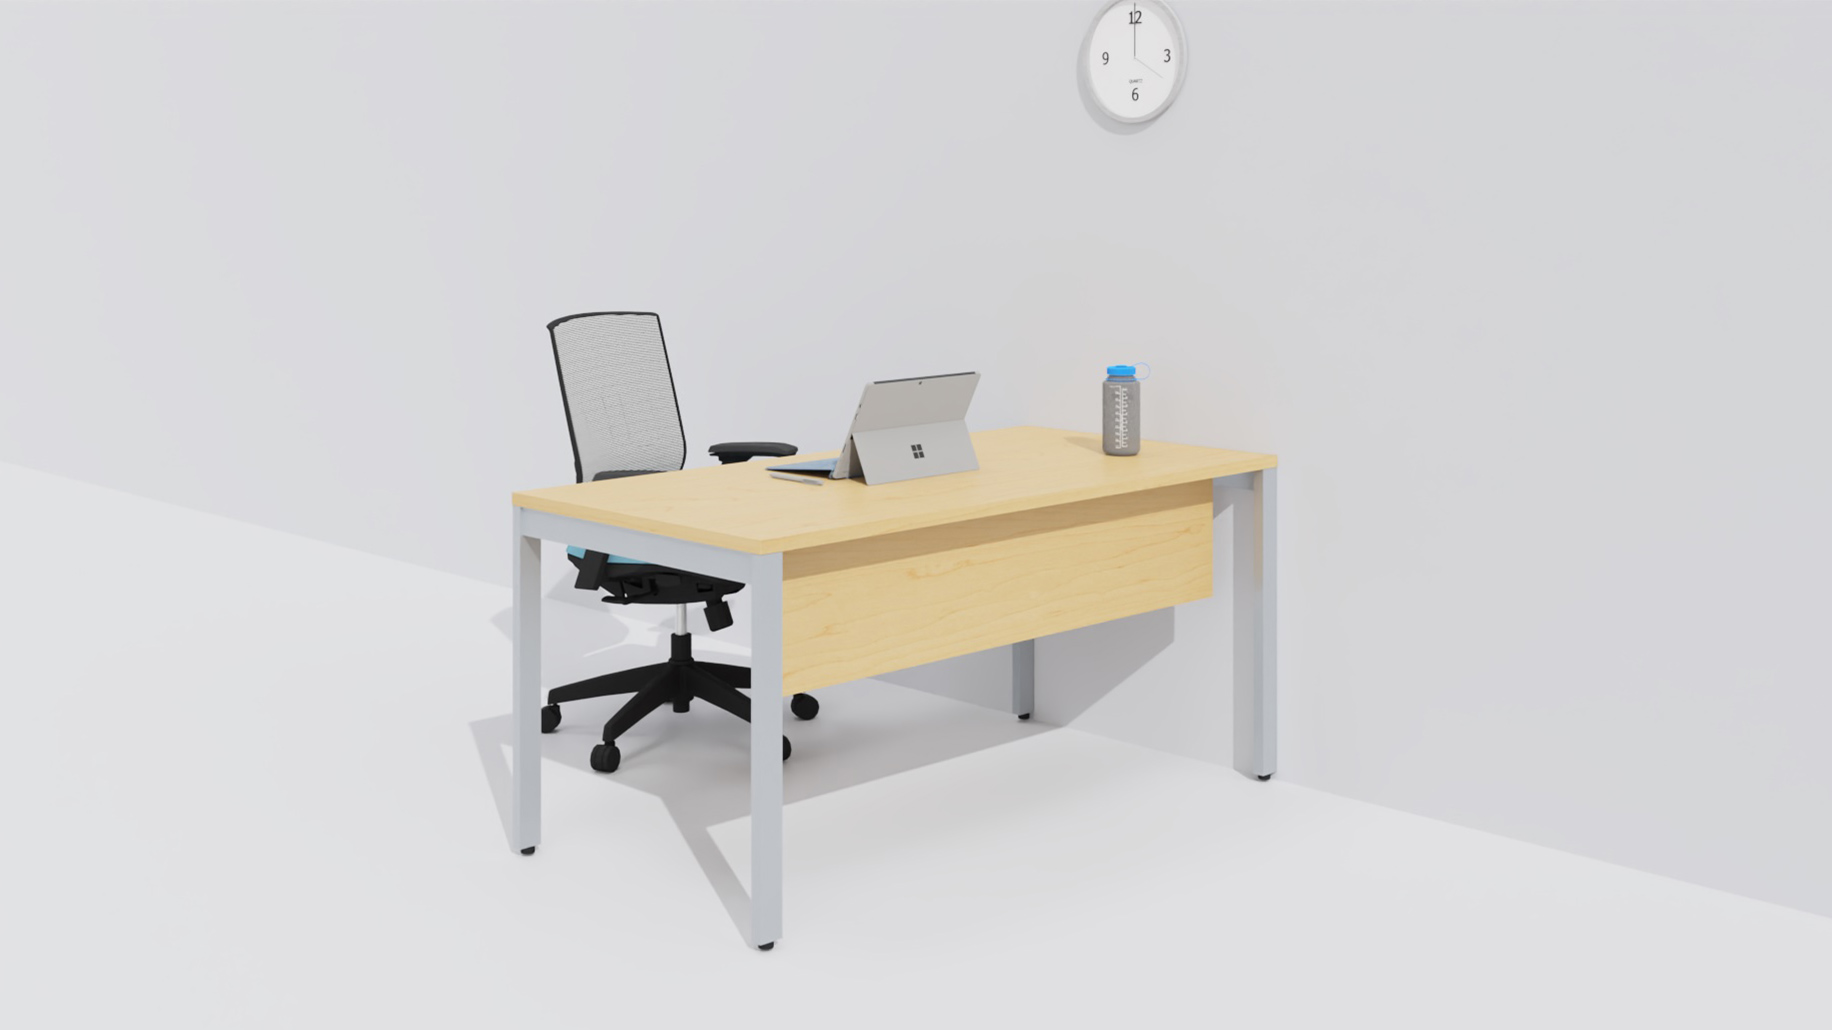 Desk by the wall with work tools on it and a chair